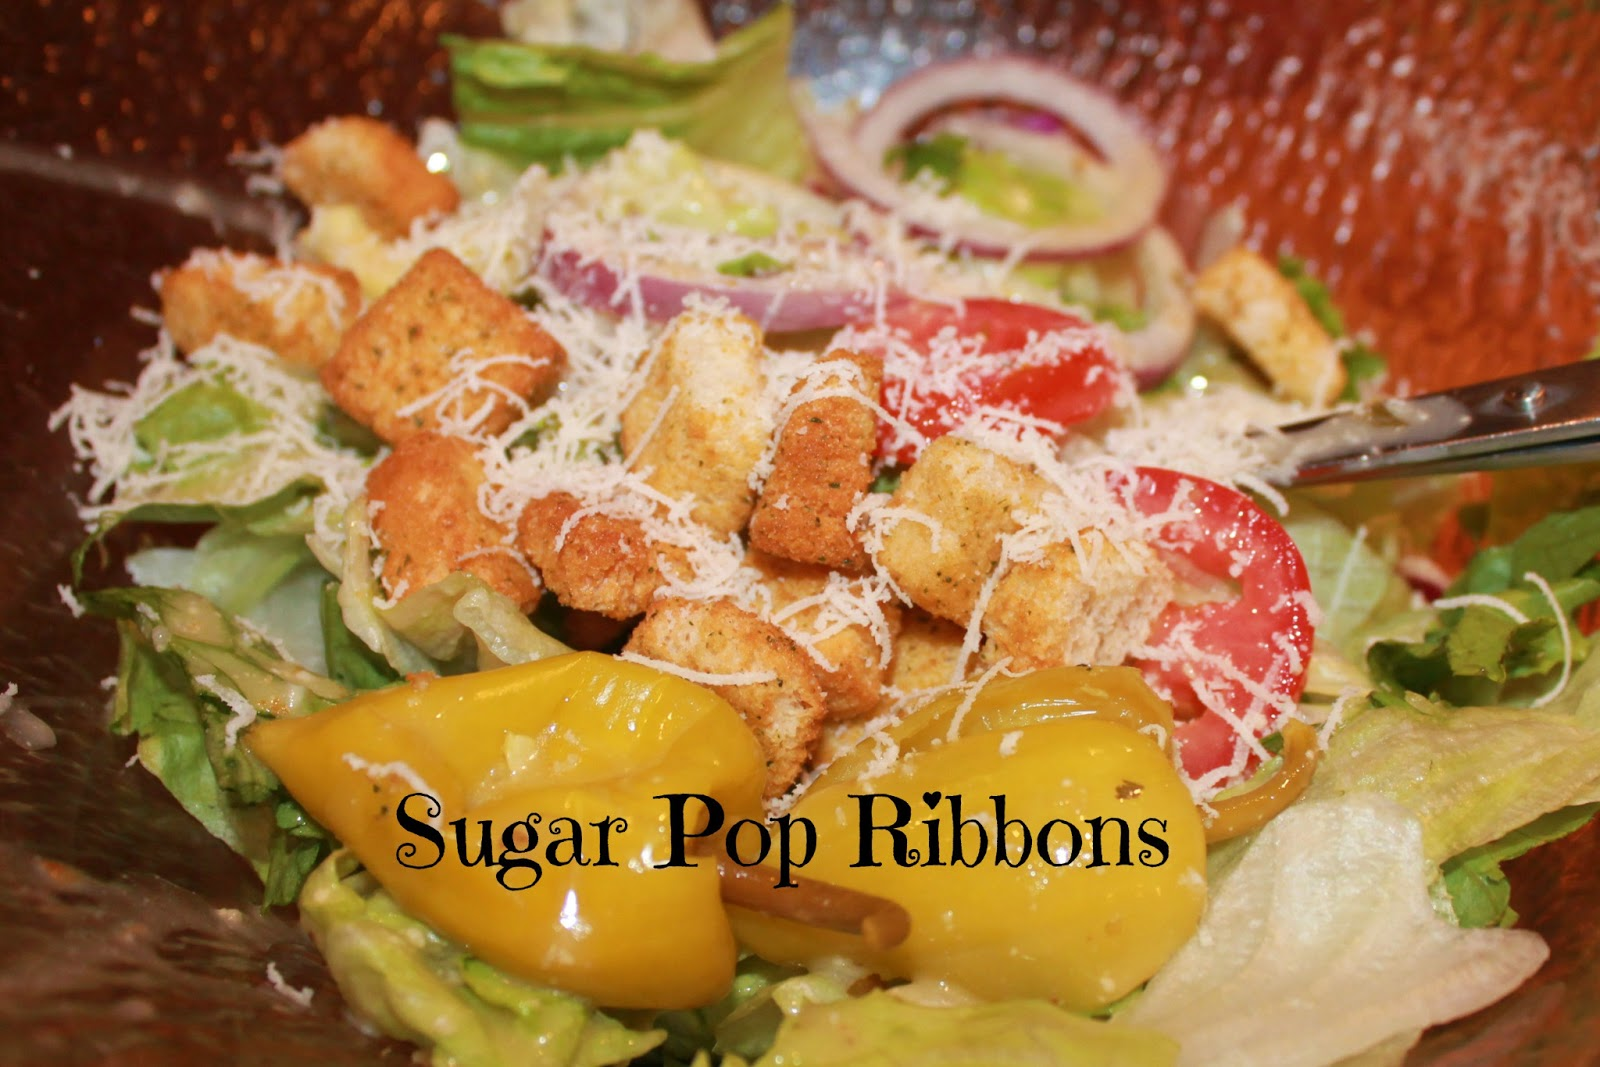 Sugar Pop Ribbons Reviews And Giveaways Olive Garden Review Gift Card Giveaway Ended